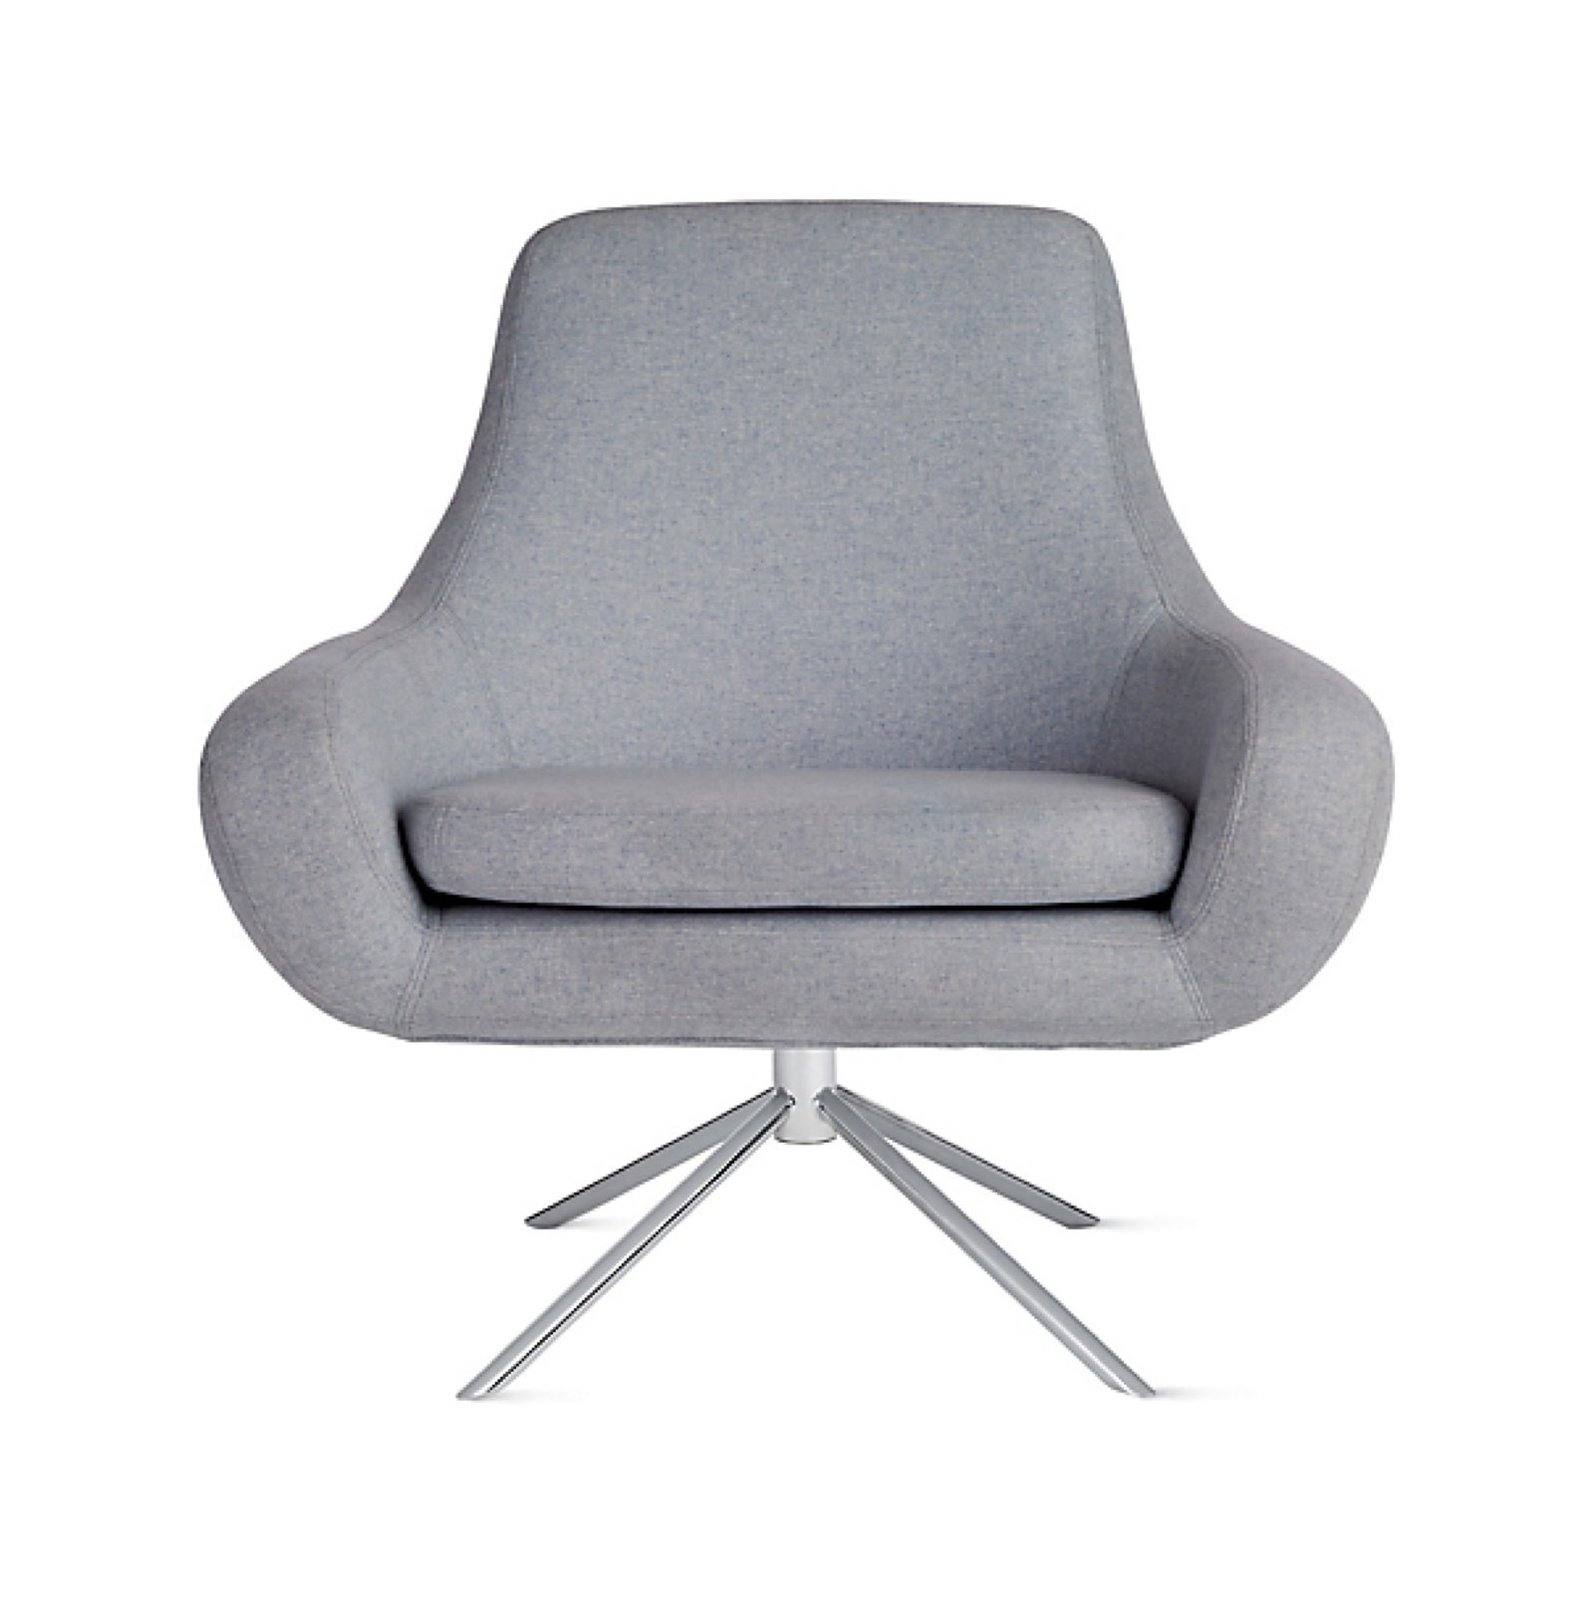 Terrific Softline Noomi Swivel Chair By Design Within Reach Dwell Creativecarmelina Interior Chair Design Creativecarmelinacom